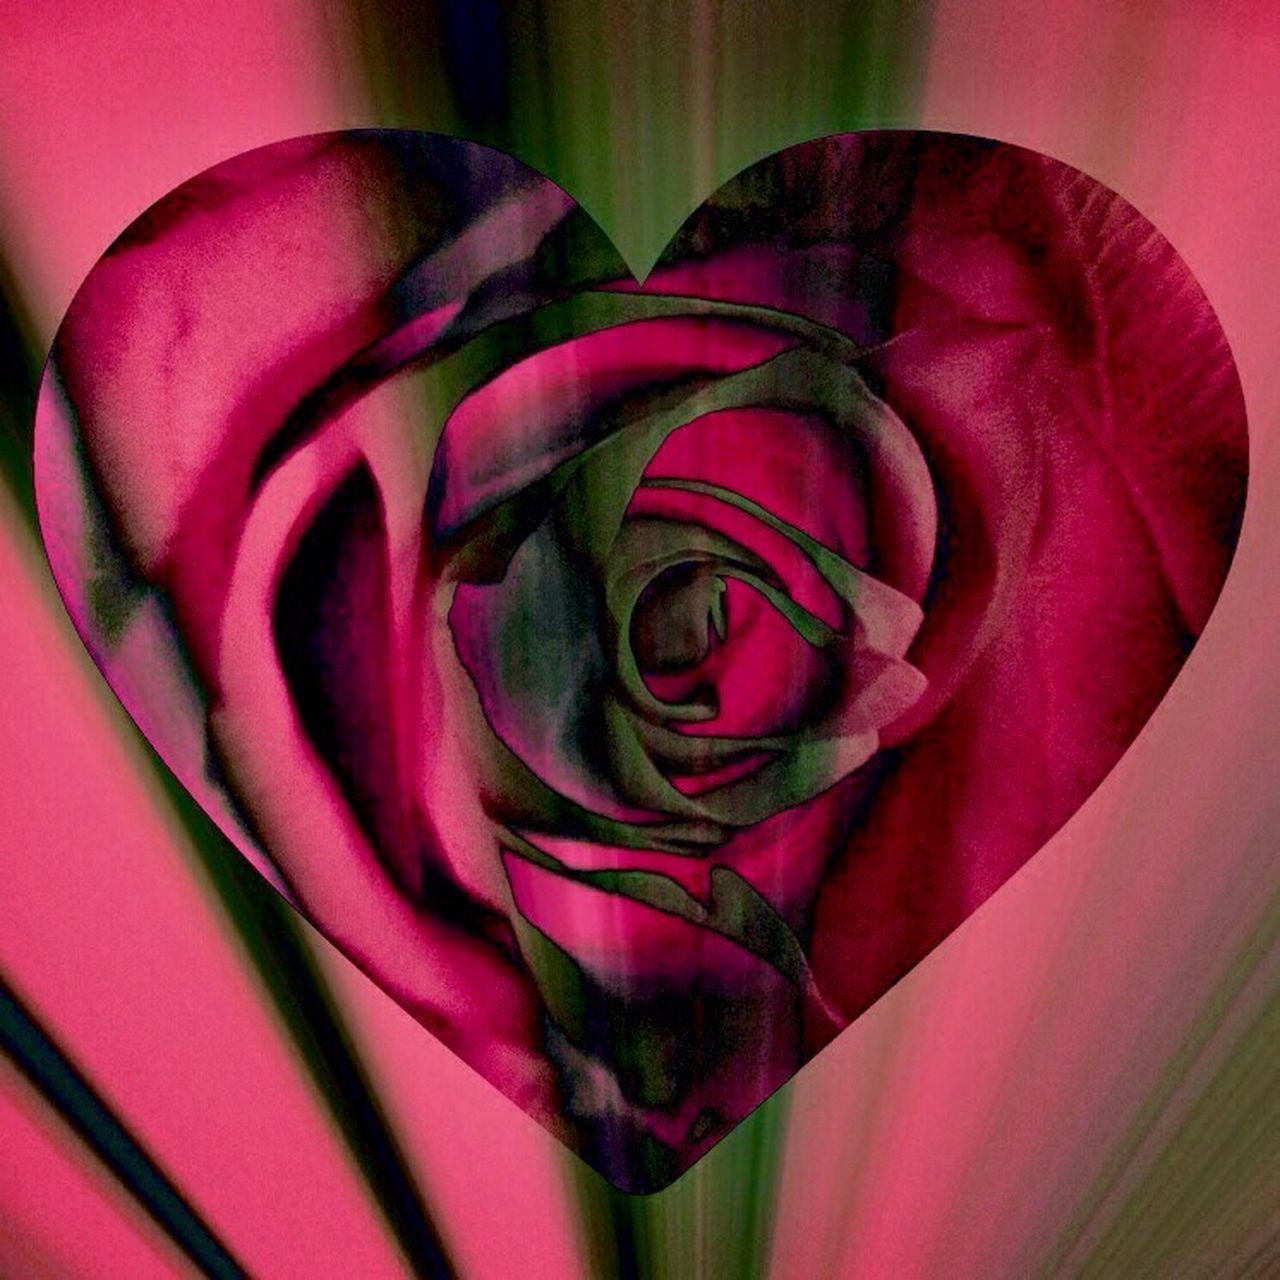 Happy Valentine's Day 💐 Valentine's Day  Heart Shape Playing With Effects Love ♥ All We Need Is Love Humanity At It's Finest Flower Head Beauty In Nature For My Friends That Connect